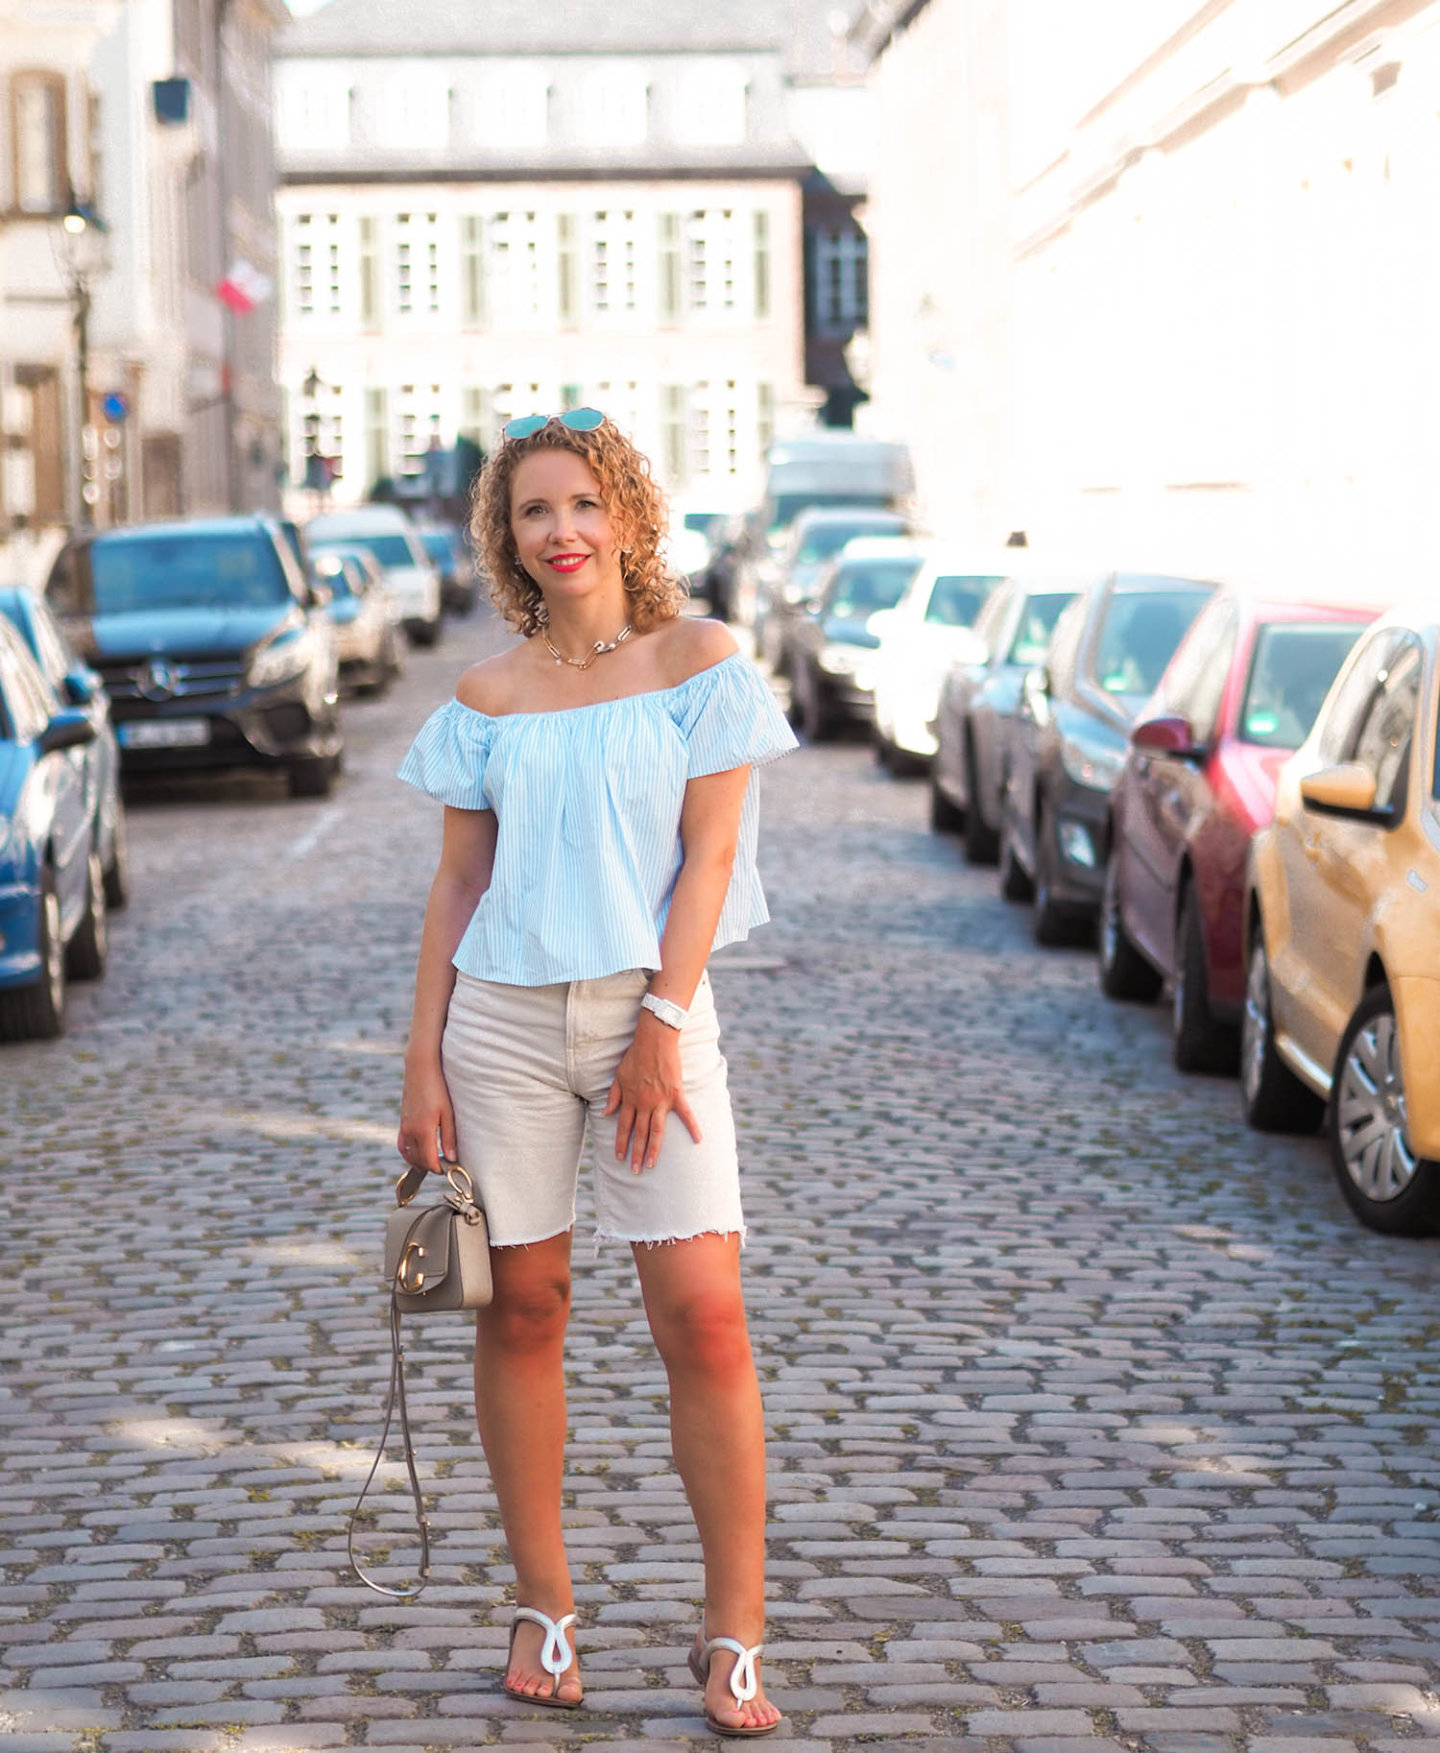 off-shoulder shirt und jeans-shorts